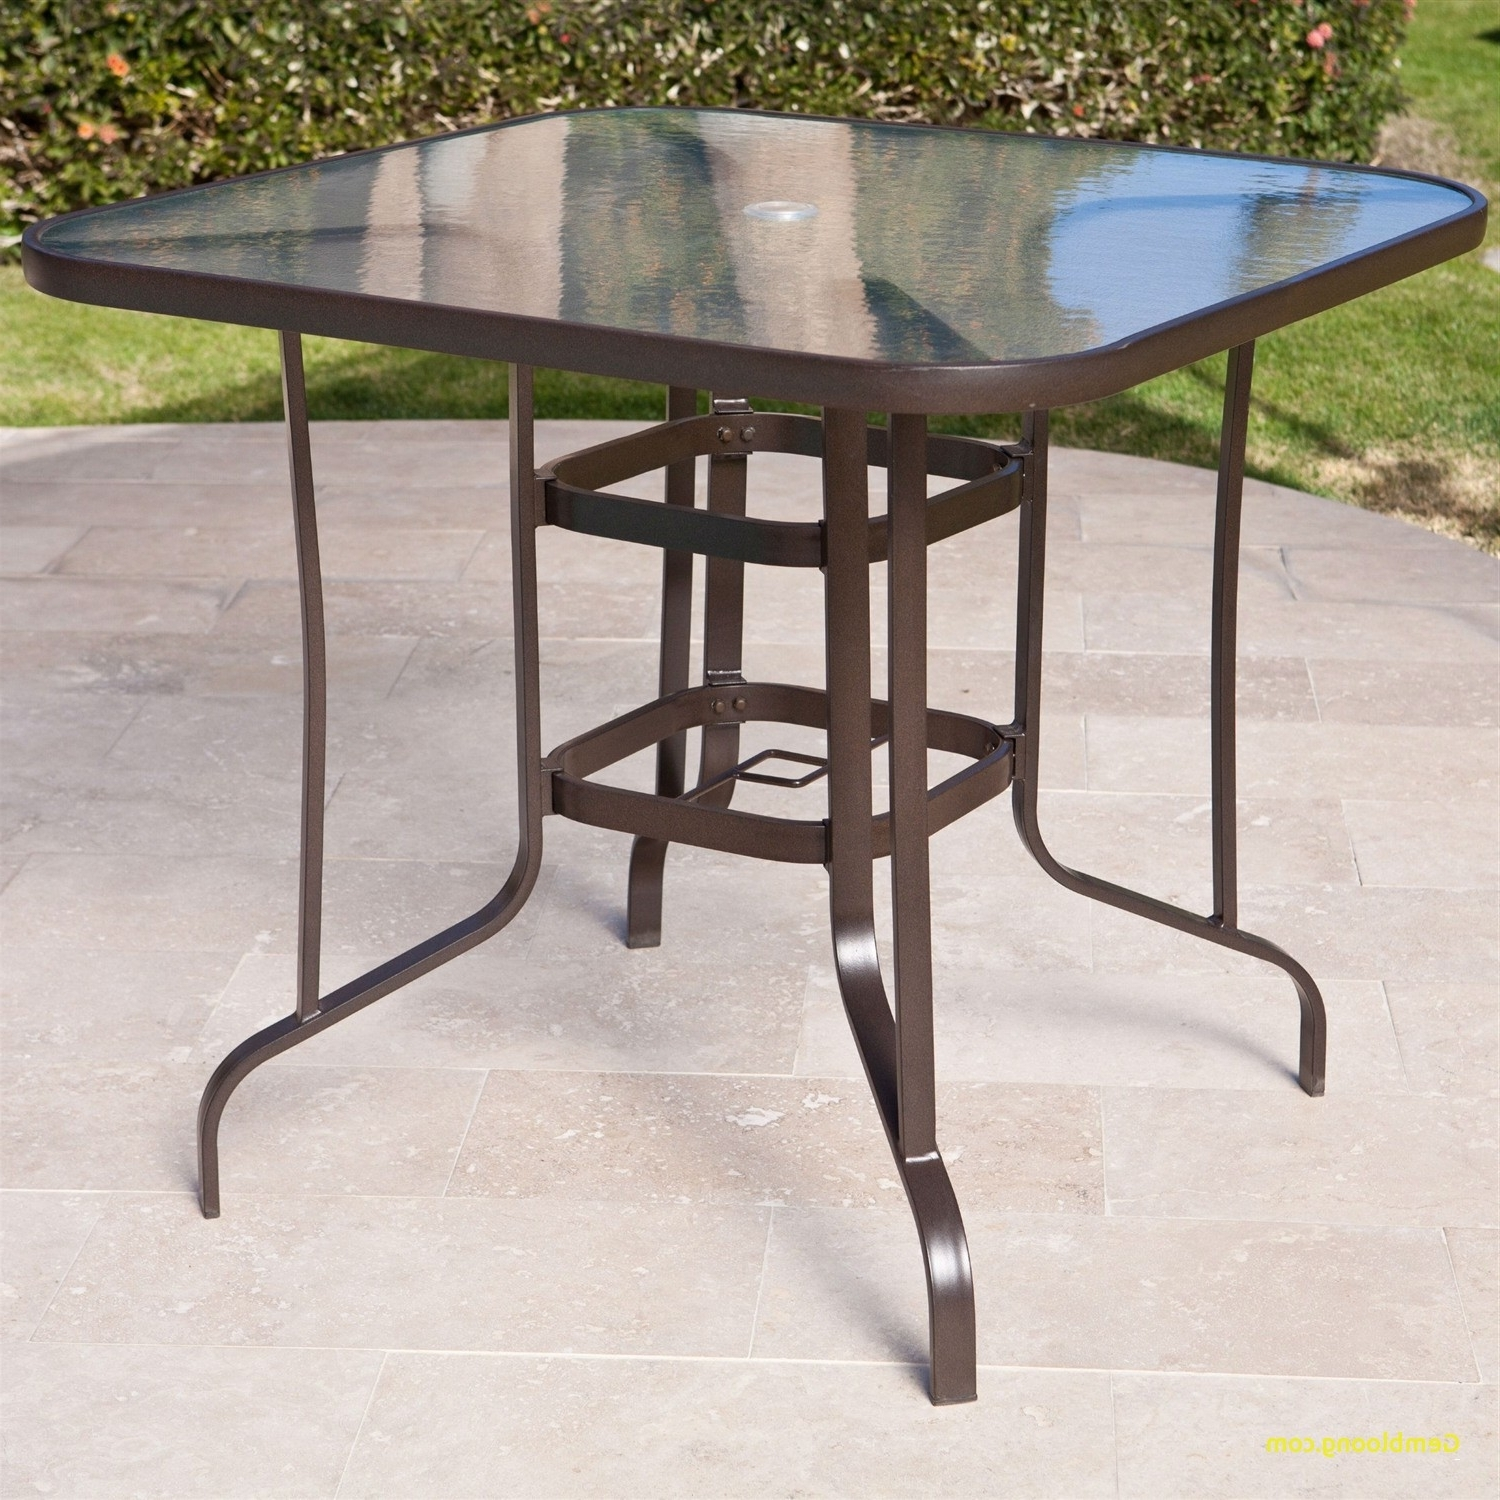 Patio Table With Umbrella Hole – Pelikansurf Pertaining To Well Known Small Patio Tables With Umbrellas Hole (View 9 of 20)